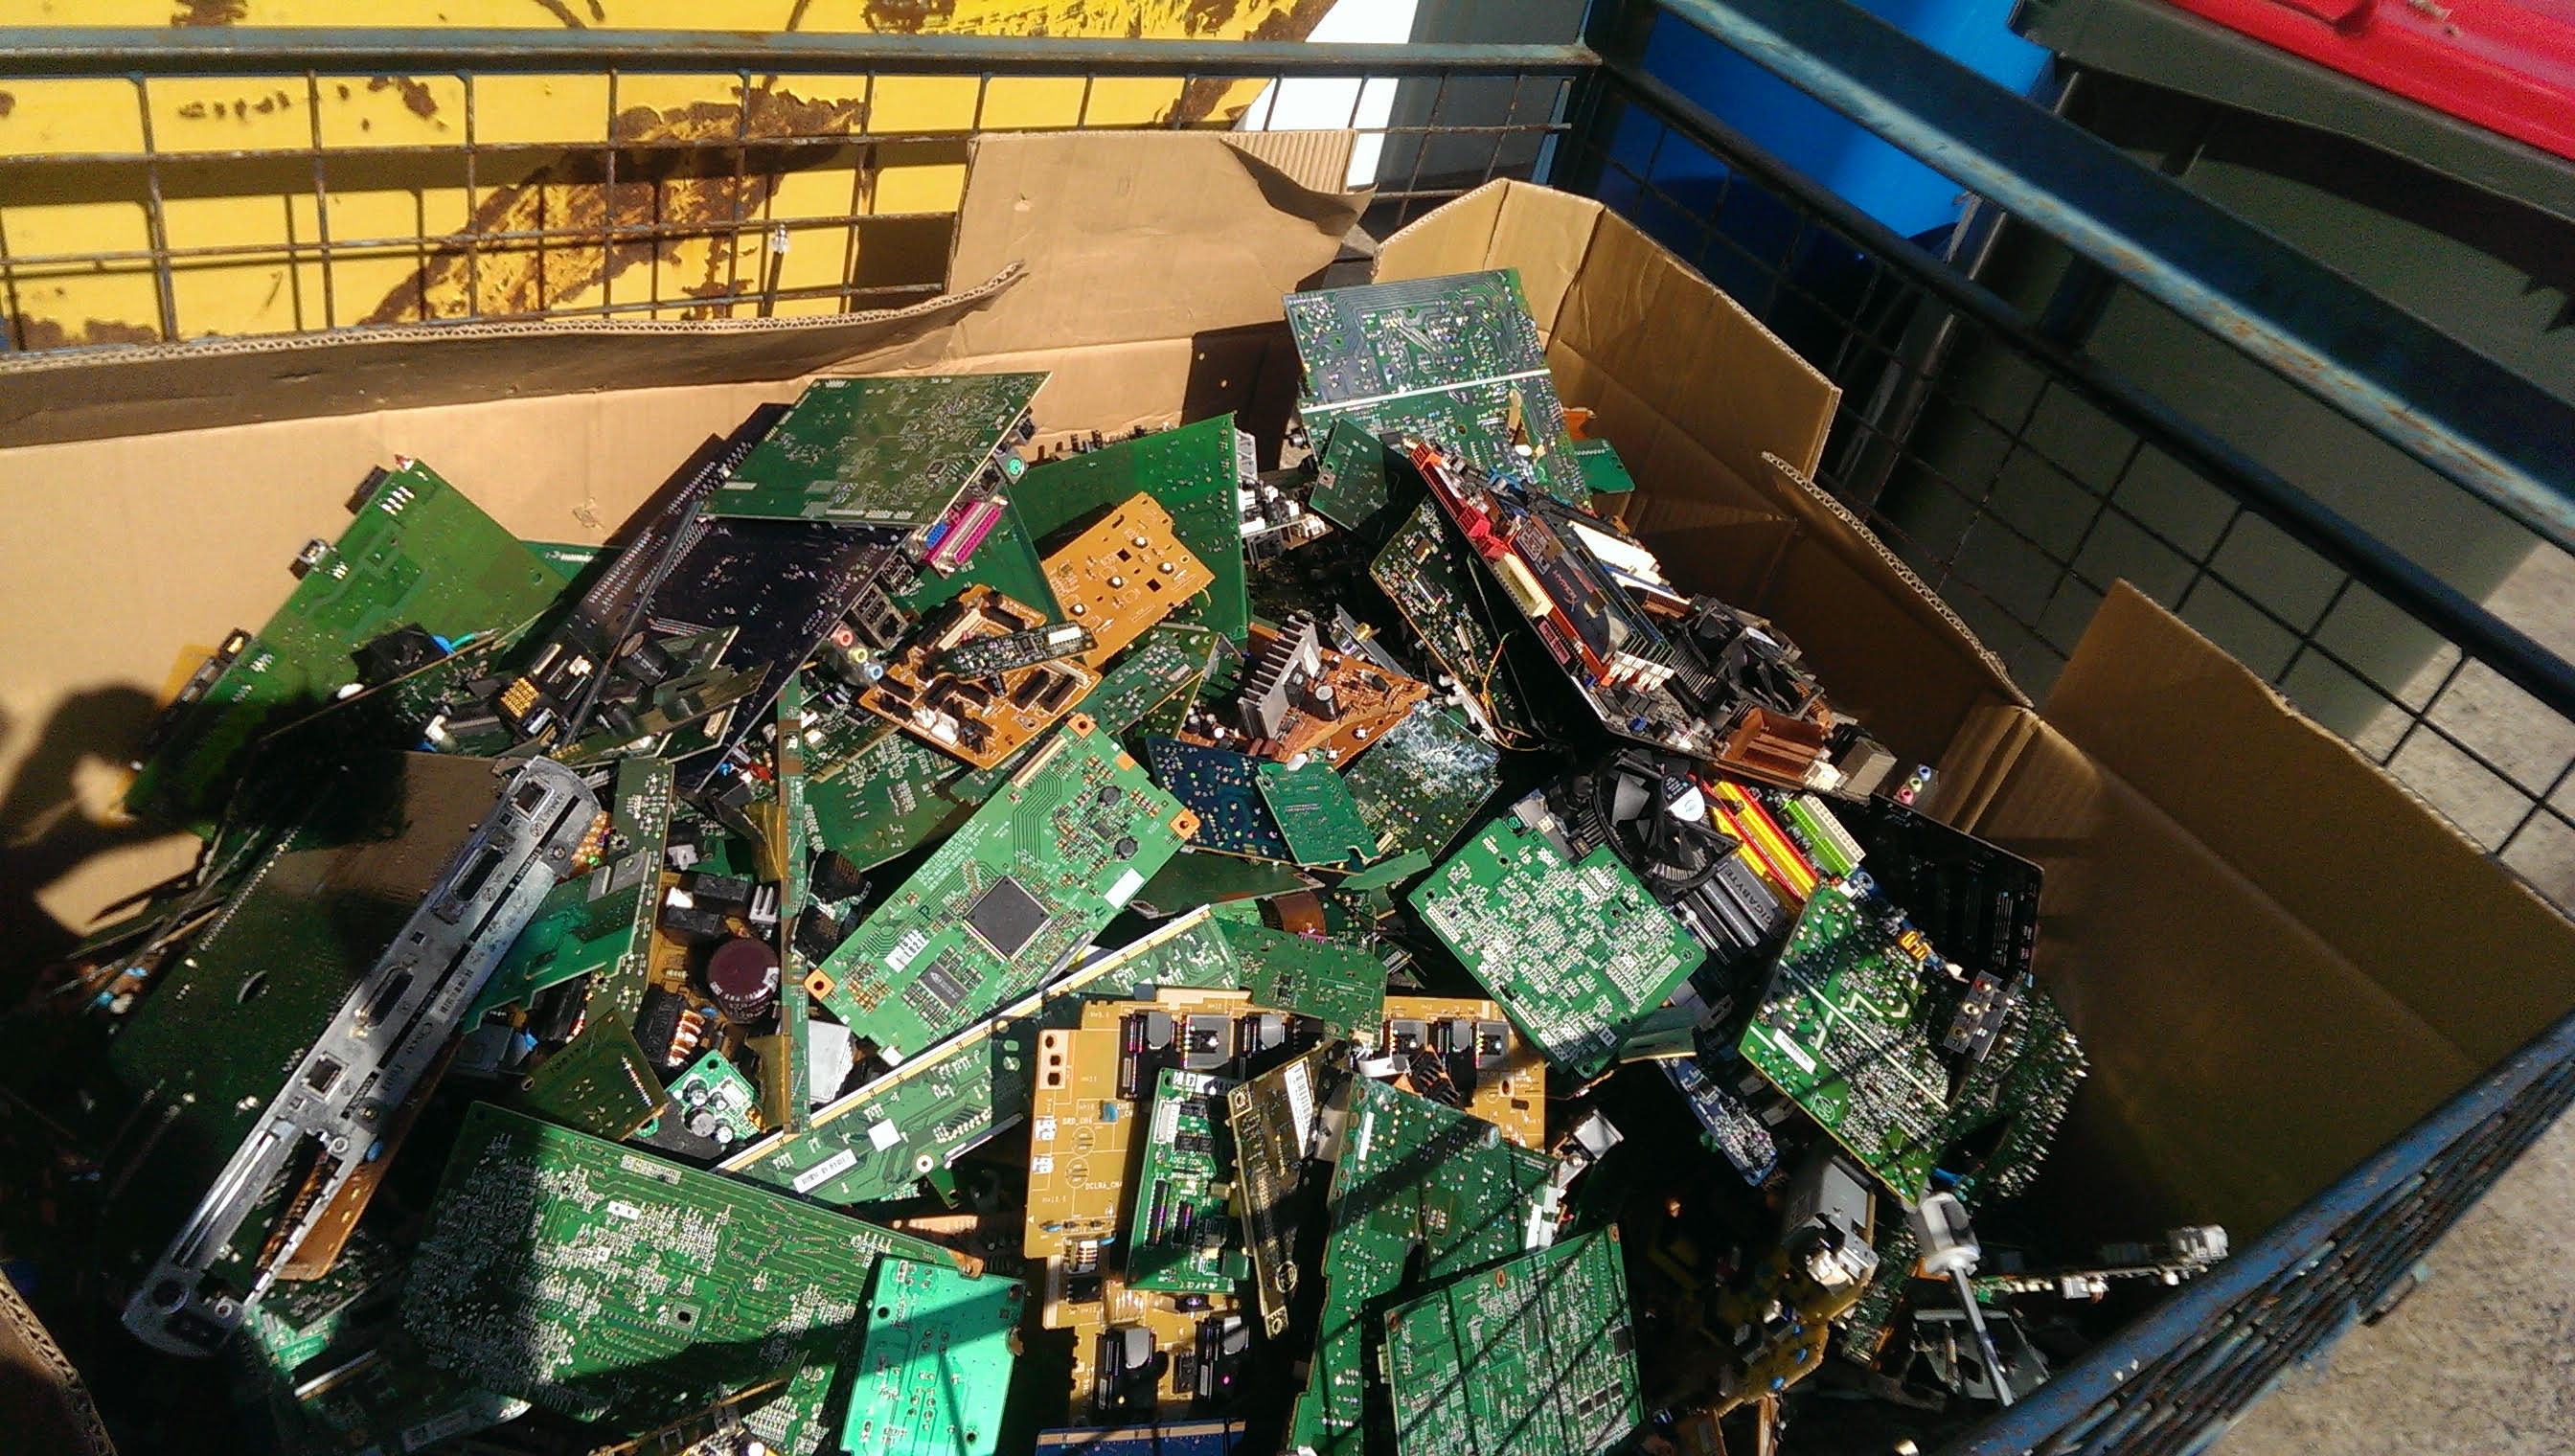 Substation 33 Recycling Electronics Brisbane By Lynne